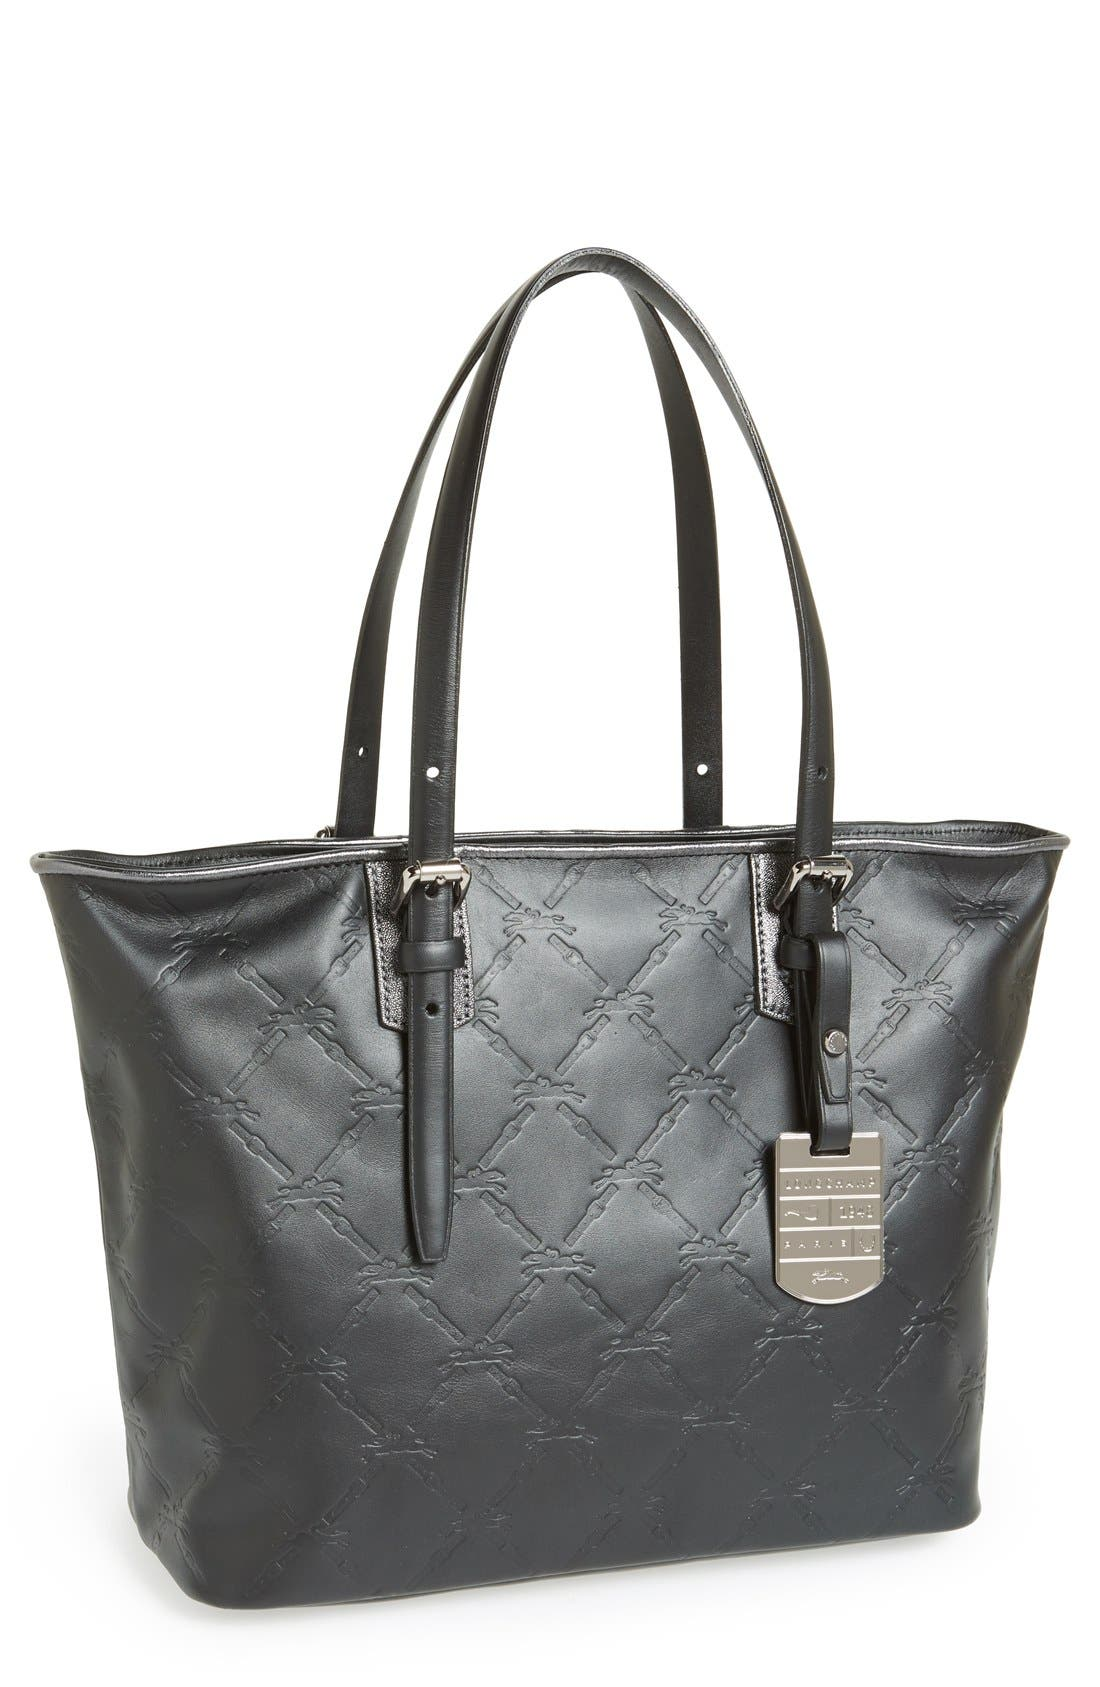 Alternate Image 1 Selected - Longchamp 'Medium LM Cuir' Leather Tote